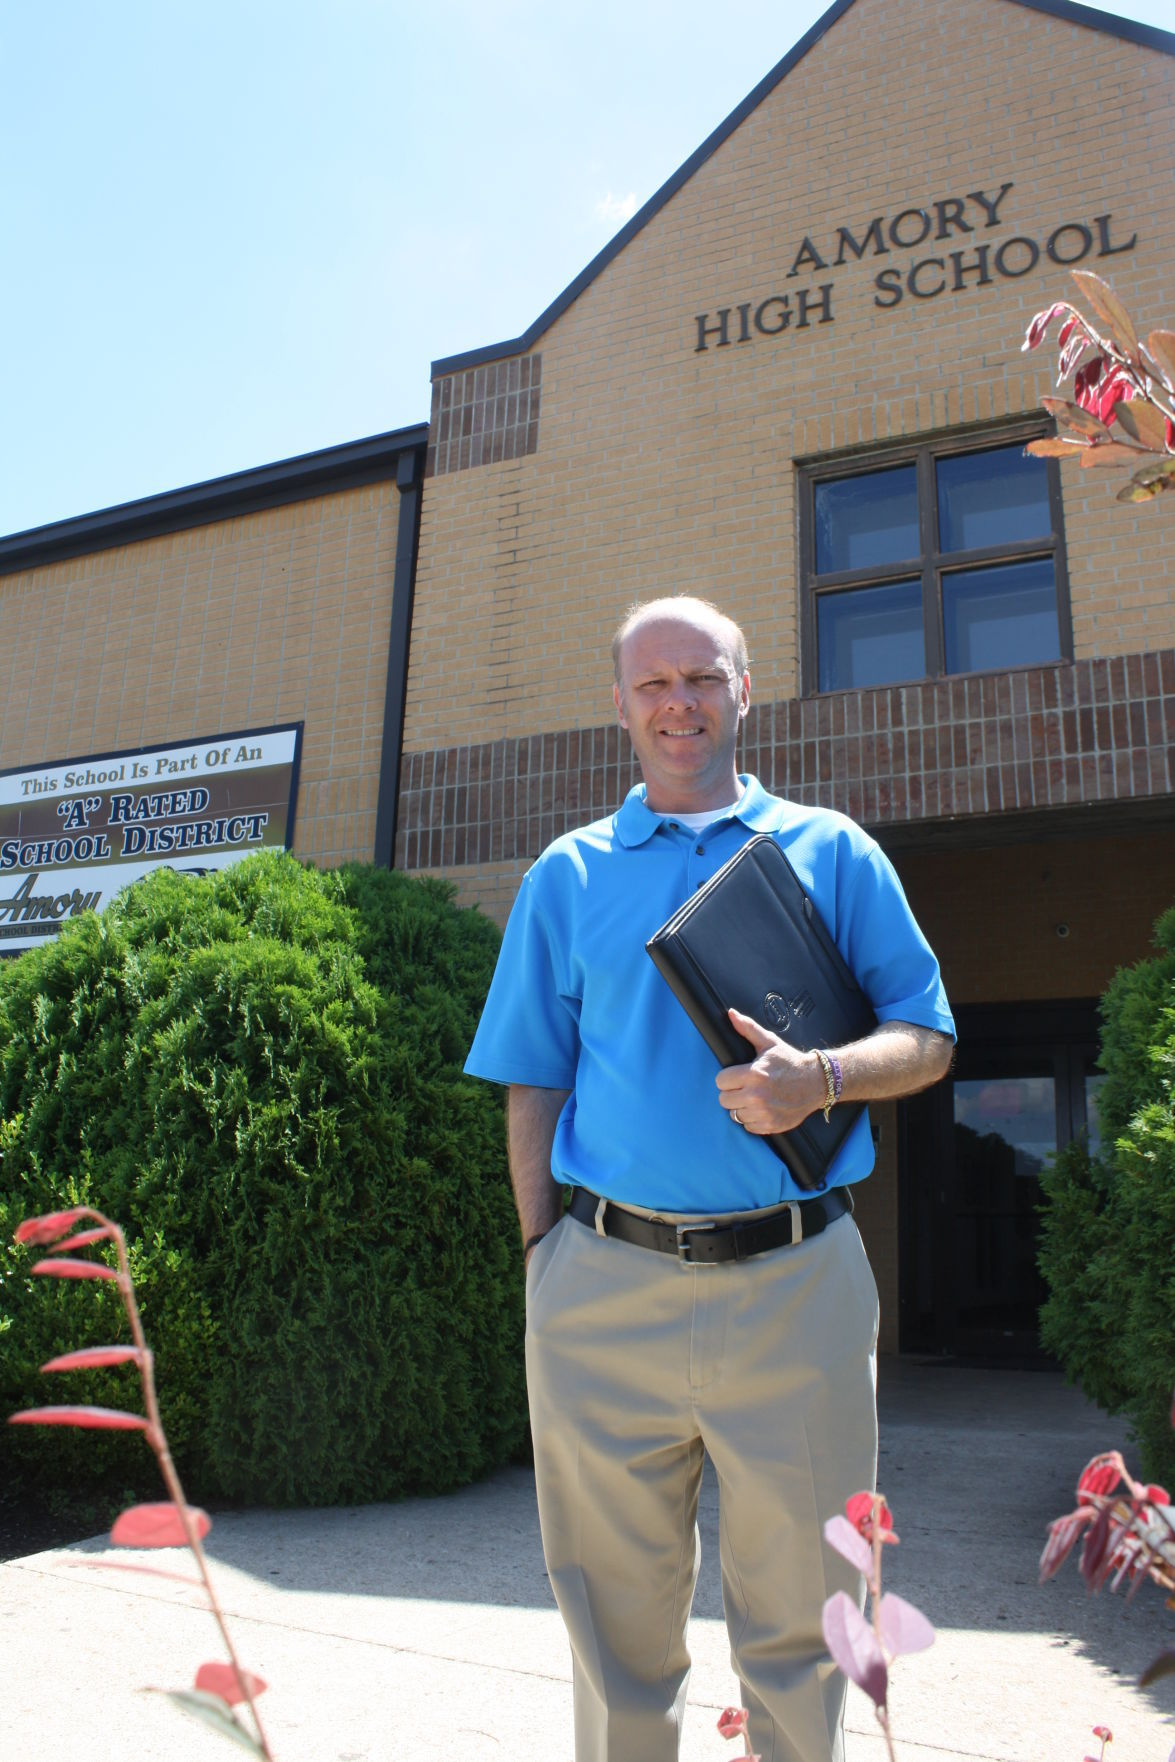 Mississippi monroe county amory - Amory High School Principal Appointed Webster County Superintendent